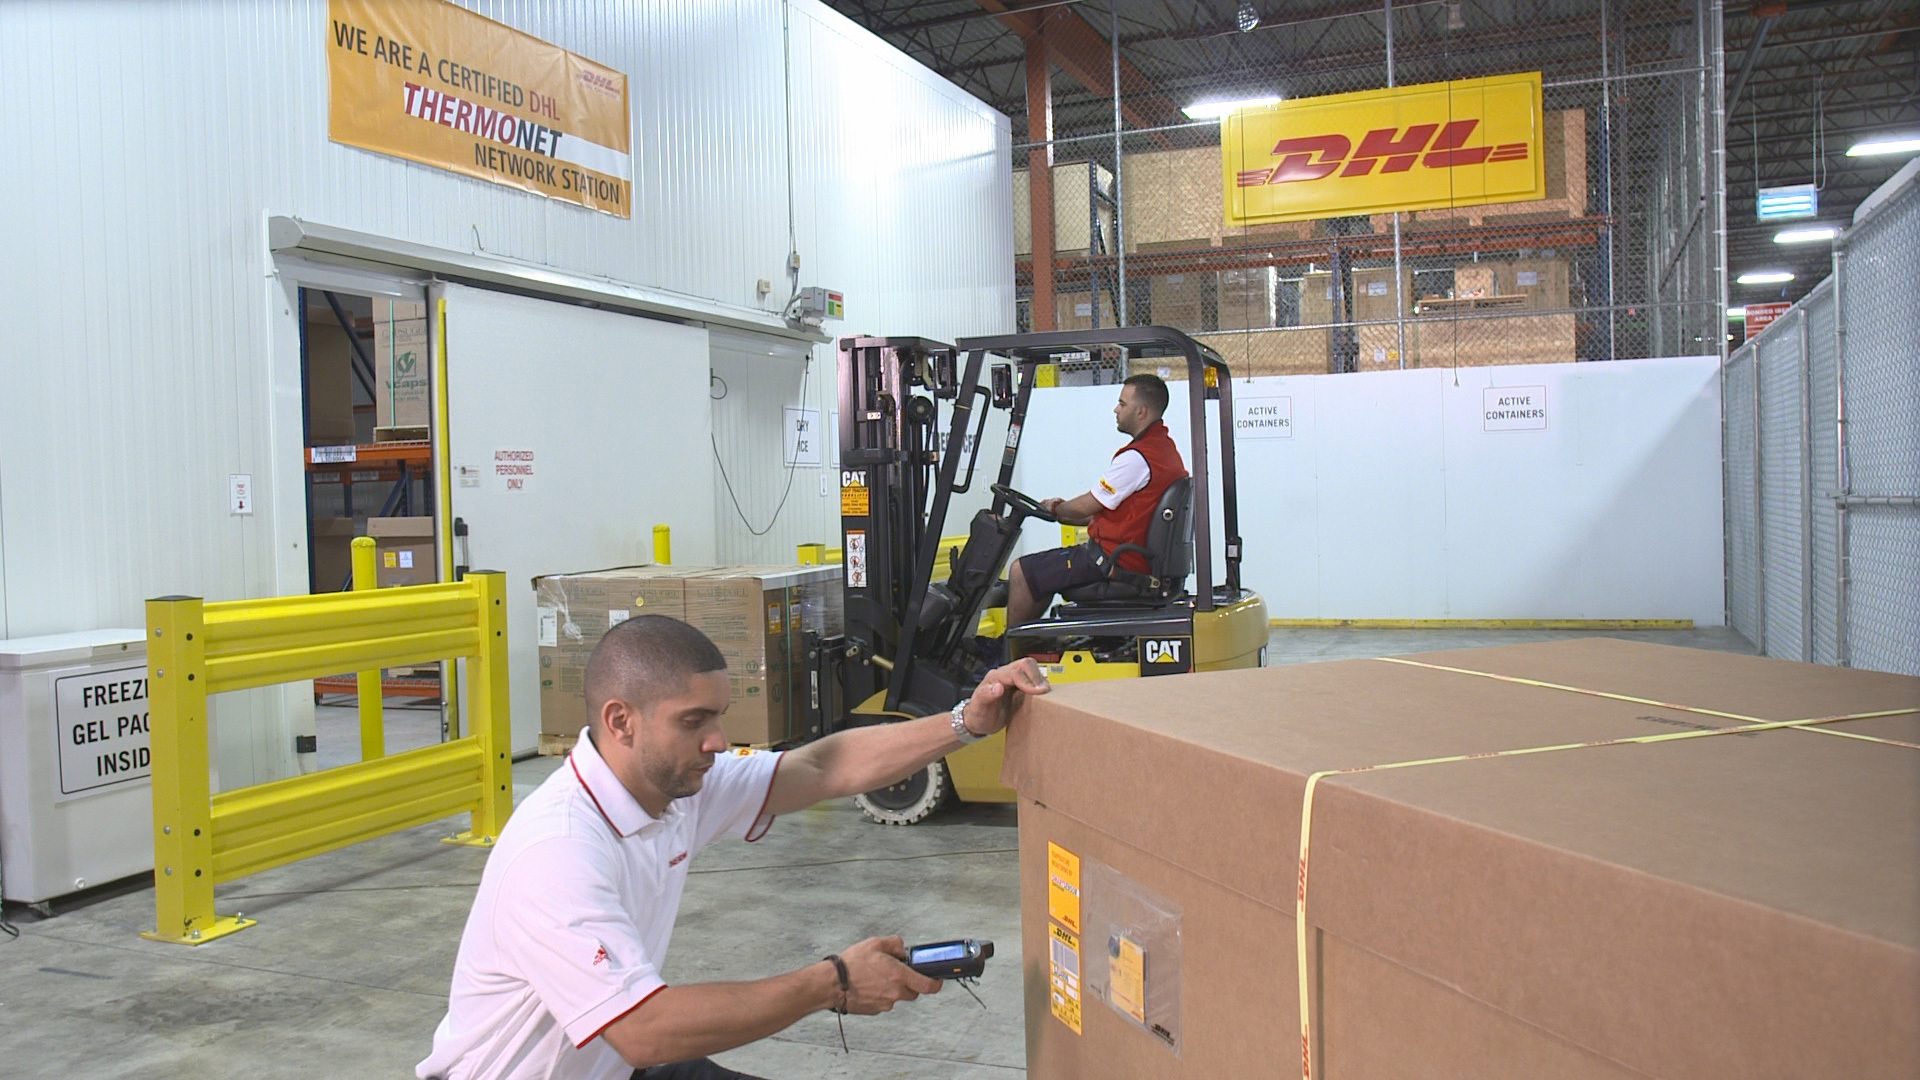 DHL Global Forwarding employees working at one of the DHL THERMONET-Life Sciences certified facilities. (Photo: Business Wire)